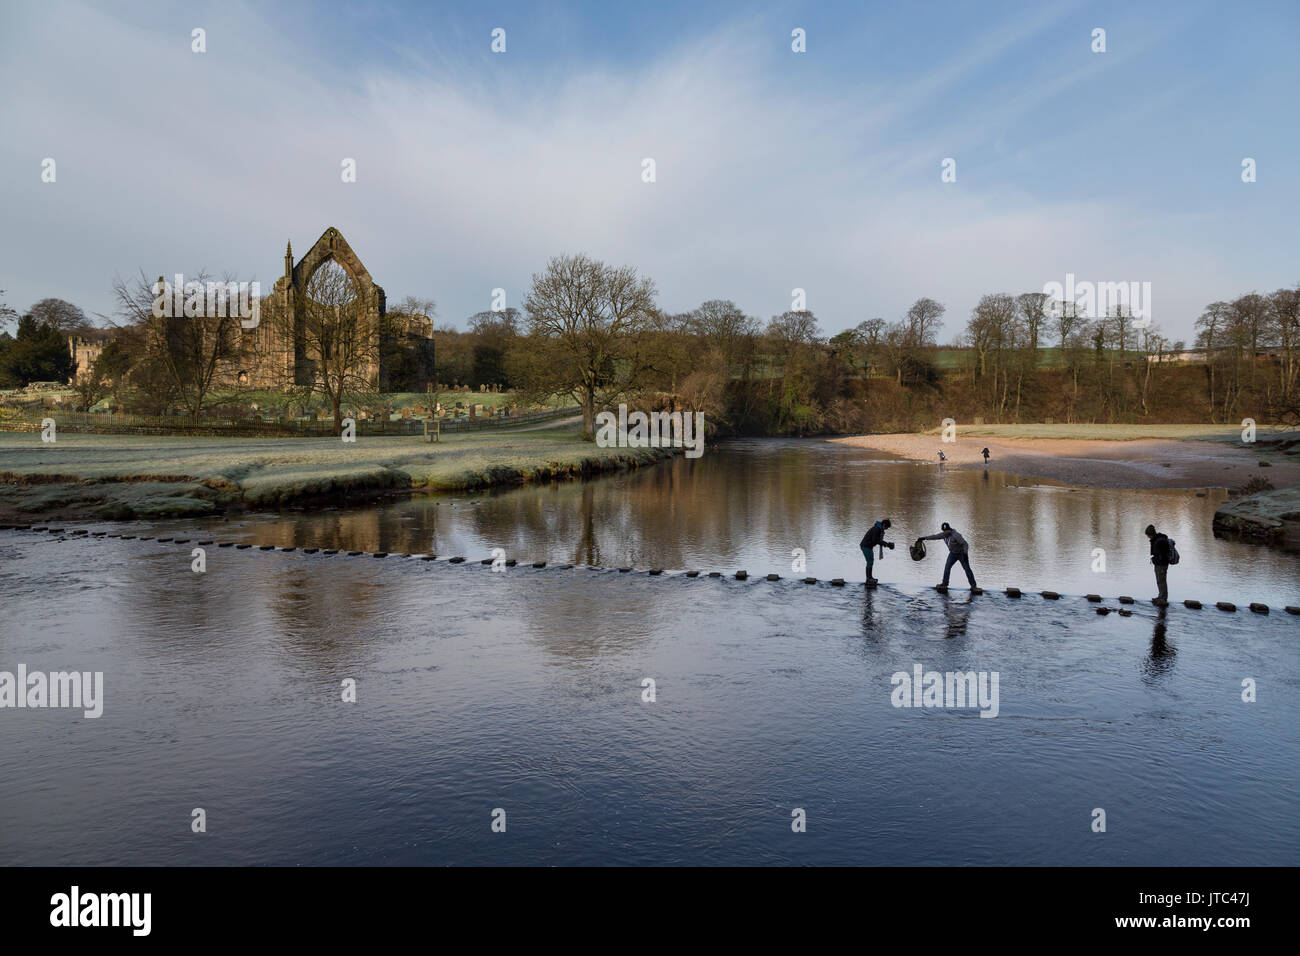 Bolton Abbey with people crossing the stepping stones over the river Wharfe in the Yorkshire Dales National Park - Stock Image